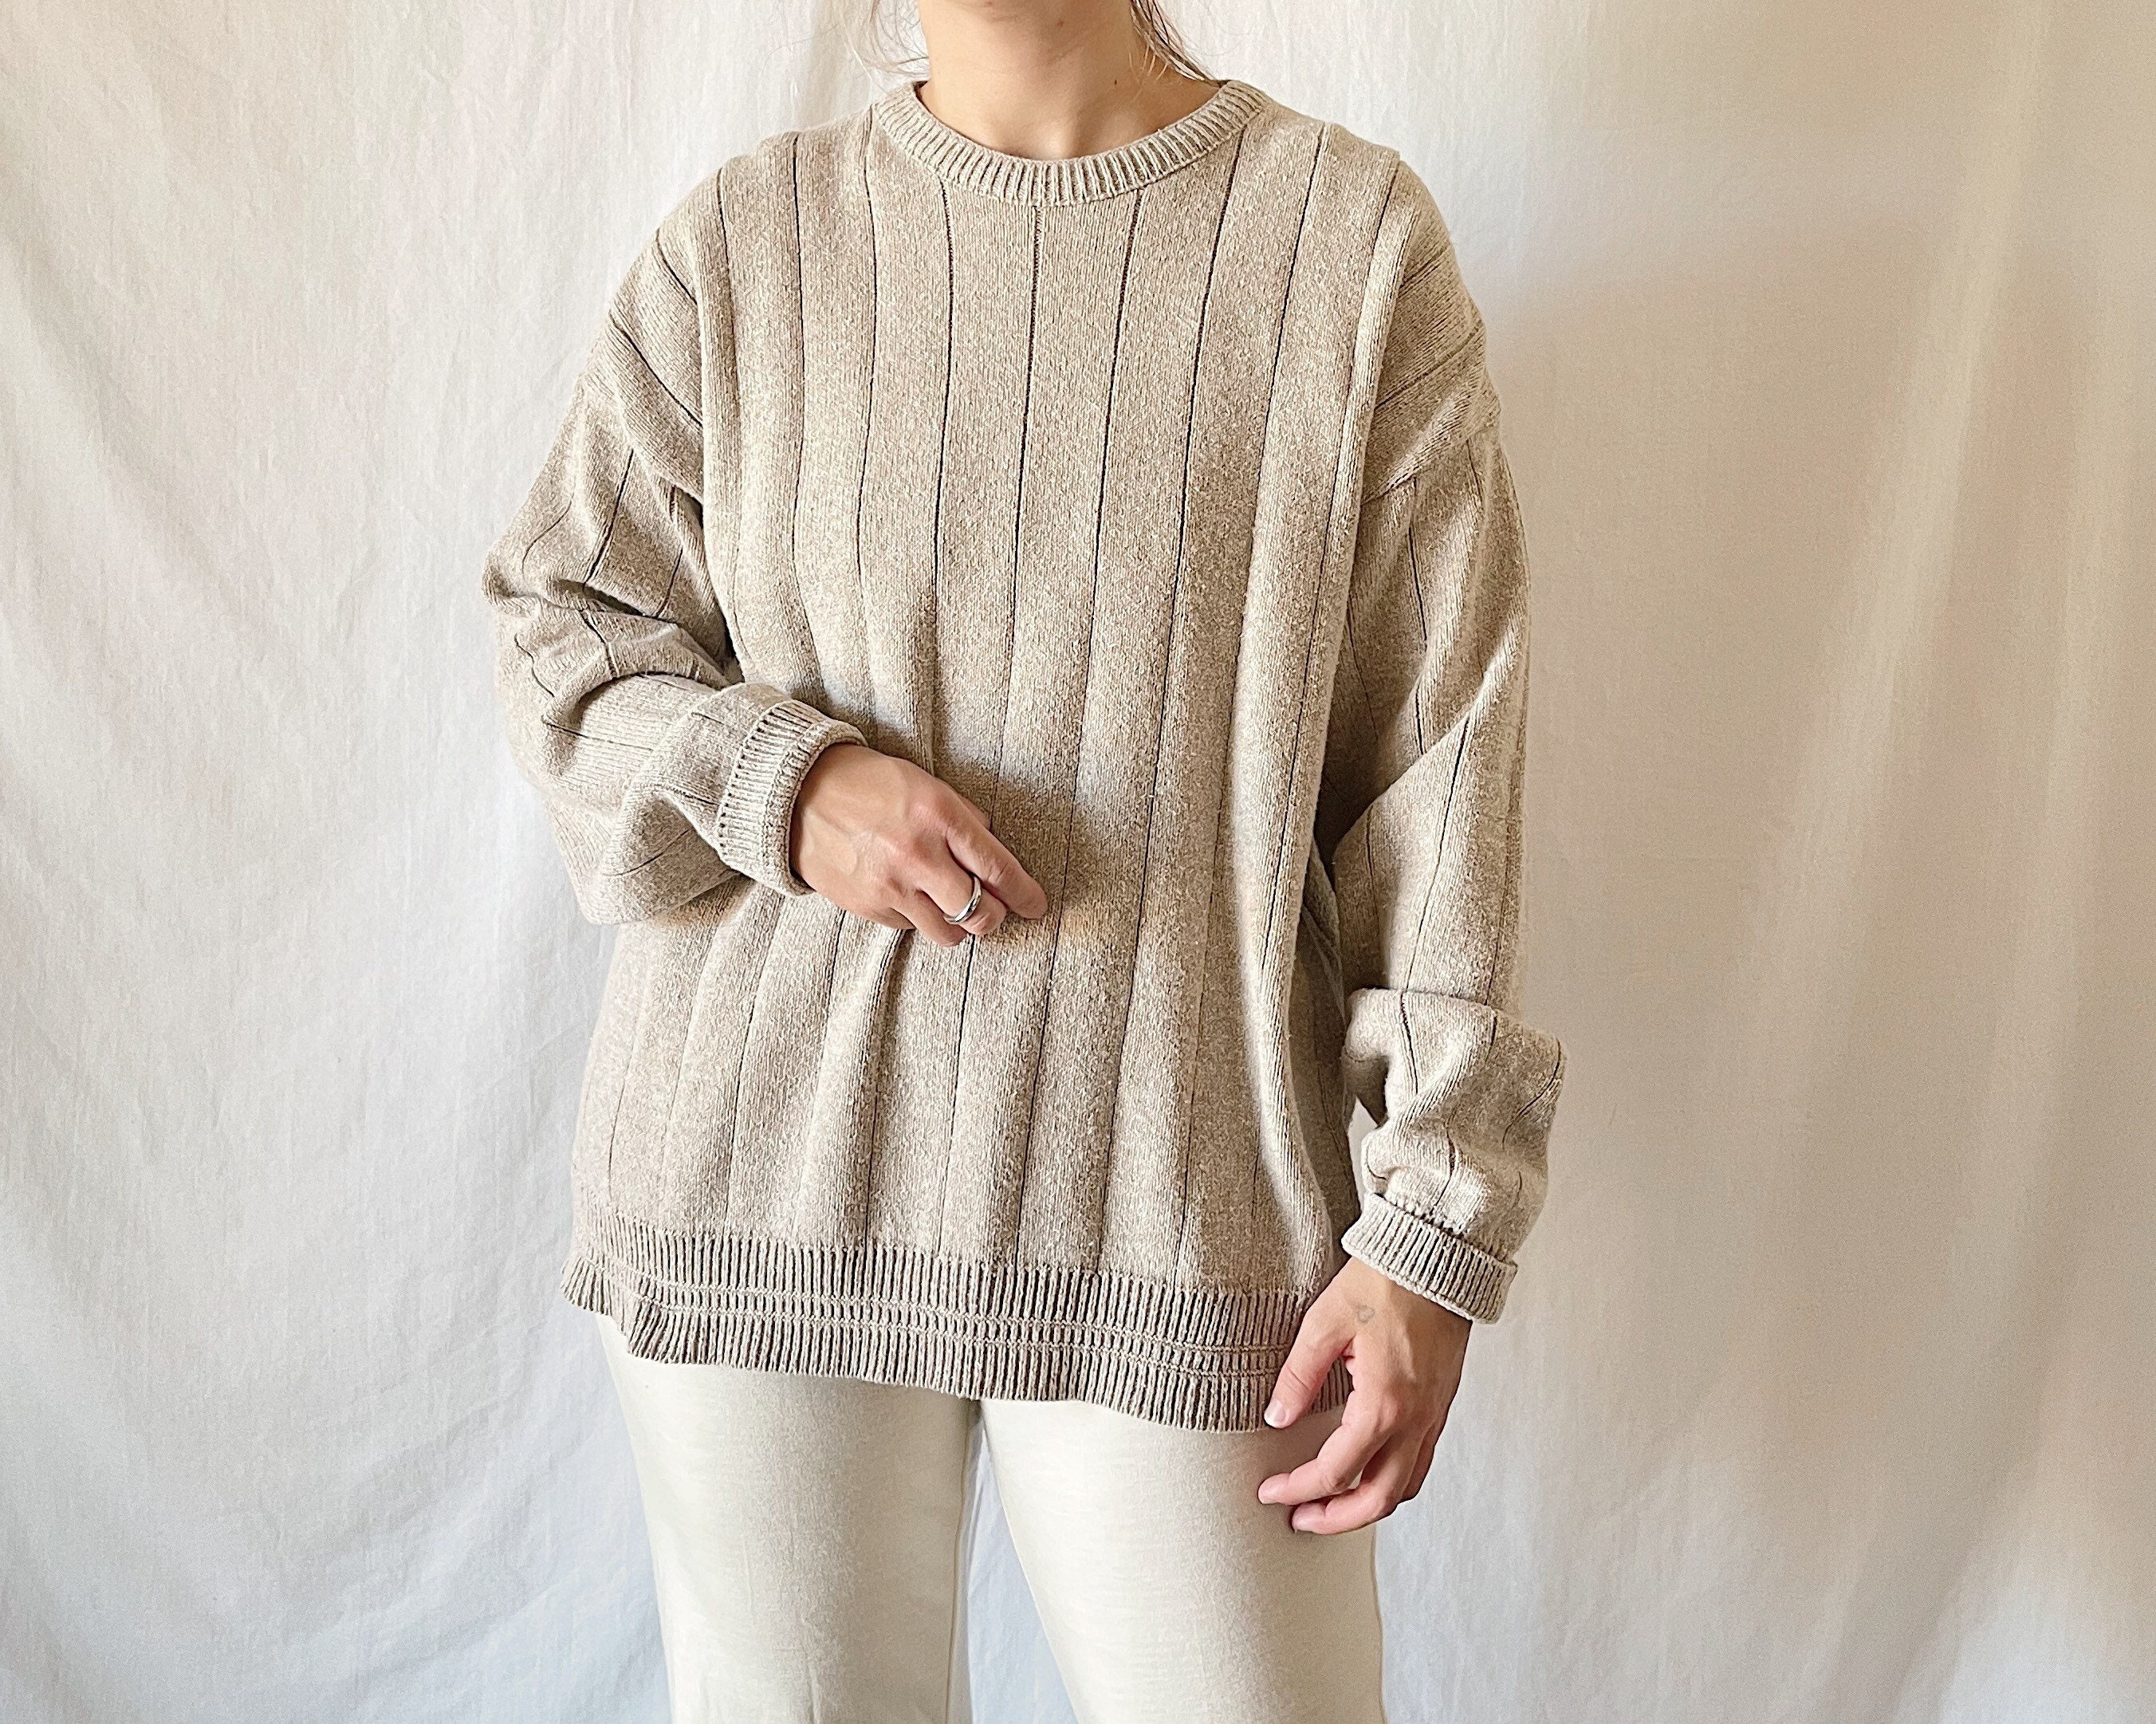 80s Sweatshirts, Sweaters, Vests | Women 1980S Oatmeal Cotton Blend Wide Rib Pullover Sweater $30.00 AT vintagedancer.com